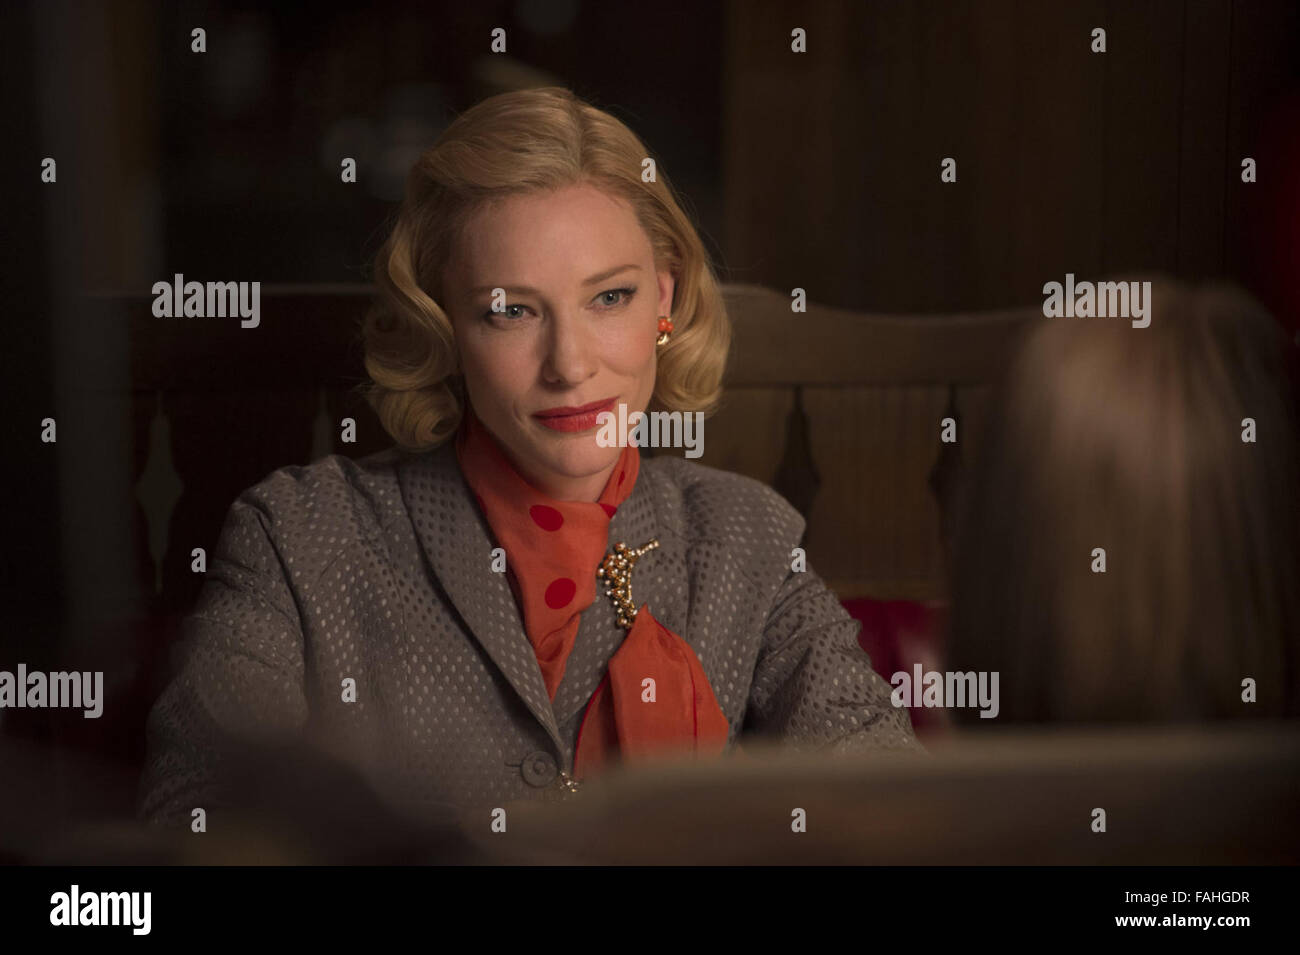 Carol is a 2015 British-American romantic drama film directed by Todd Haynes, from a screenplay by Phyllis Nagy - Stock Image